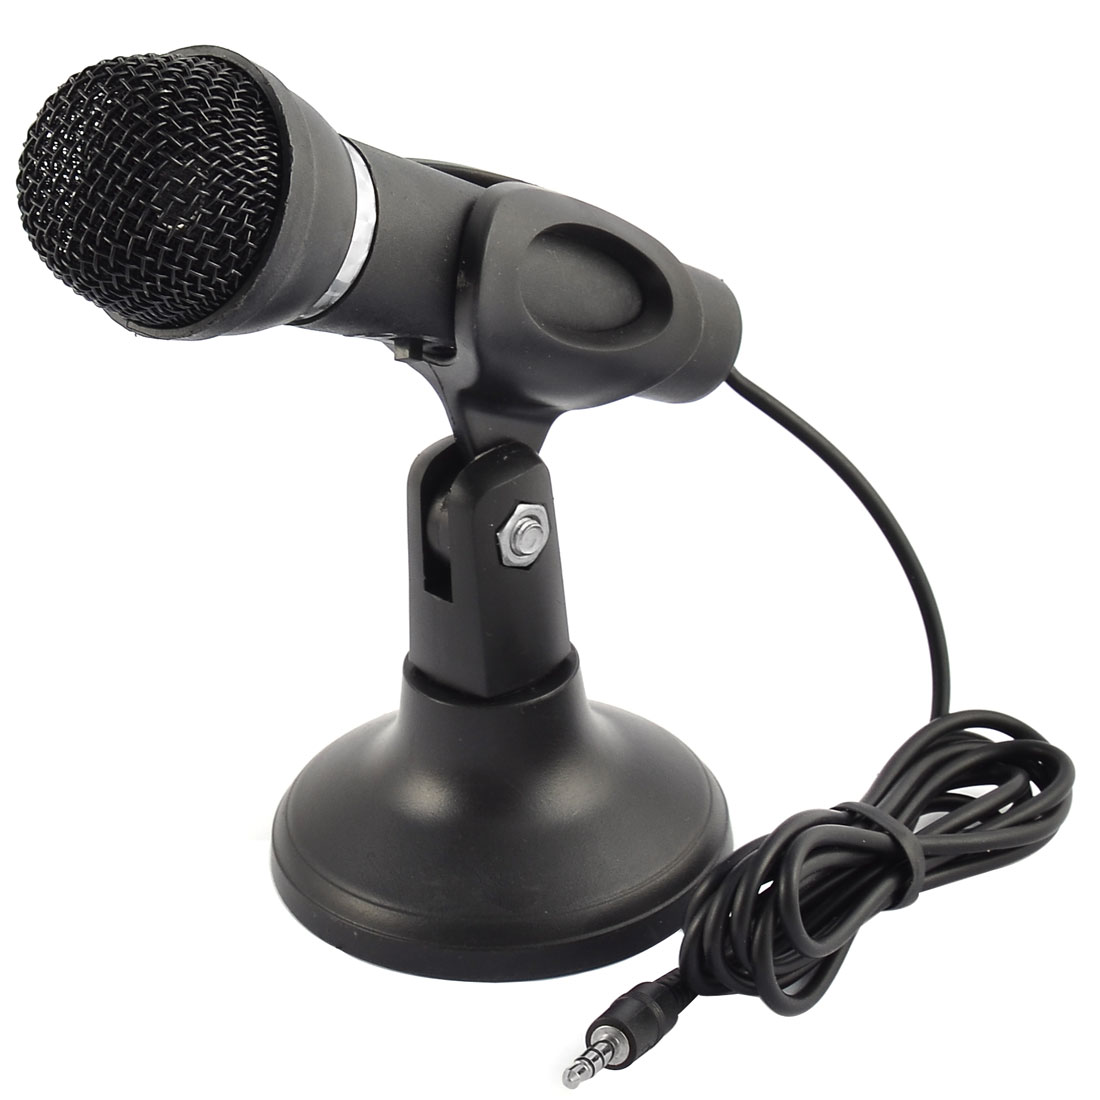 3.5mm Plug Stereo Condenser Microphone Stand for Laptop Digital Voice Recorder